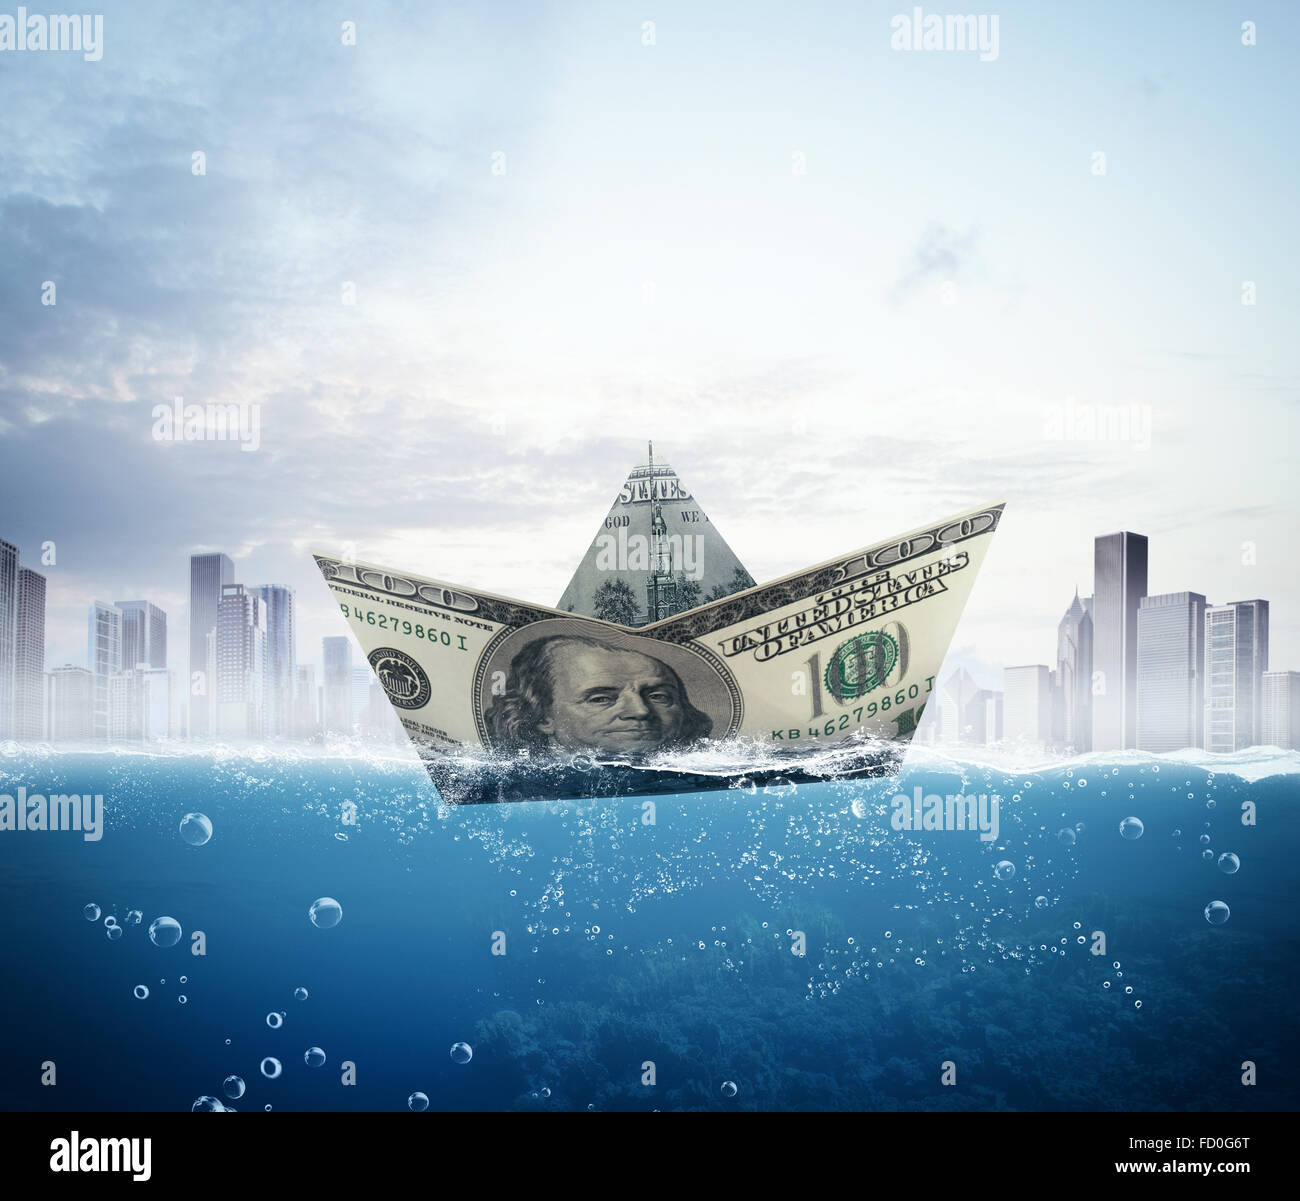 Banknote boat - Stock Image